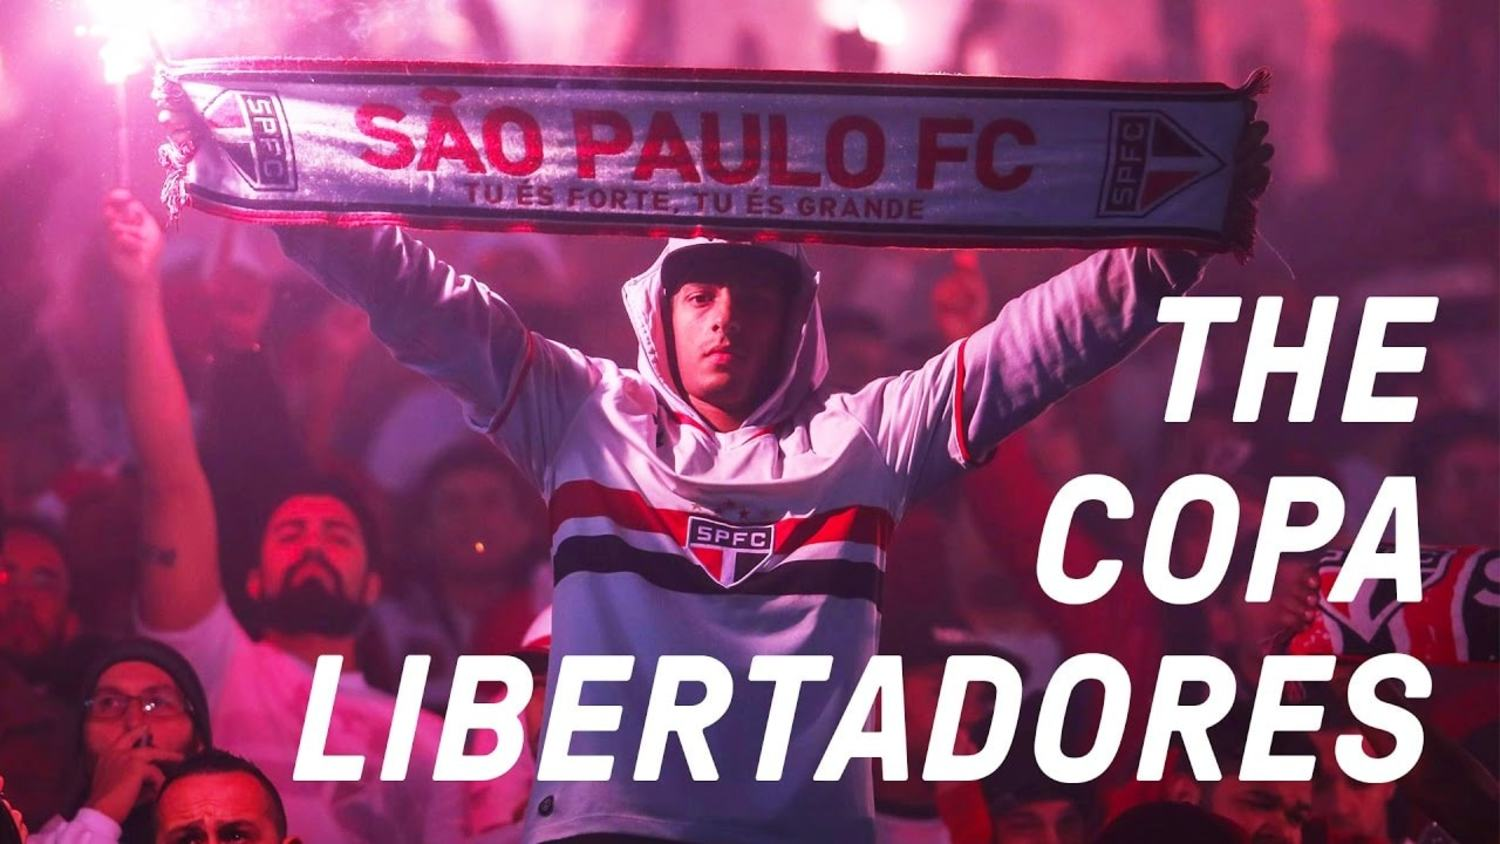 Is The Copa Libertadores Better Than The Champions League